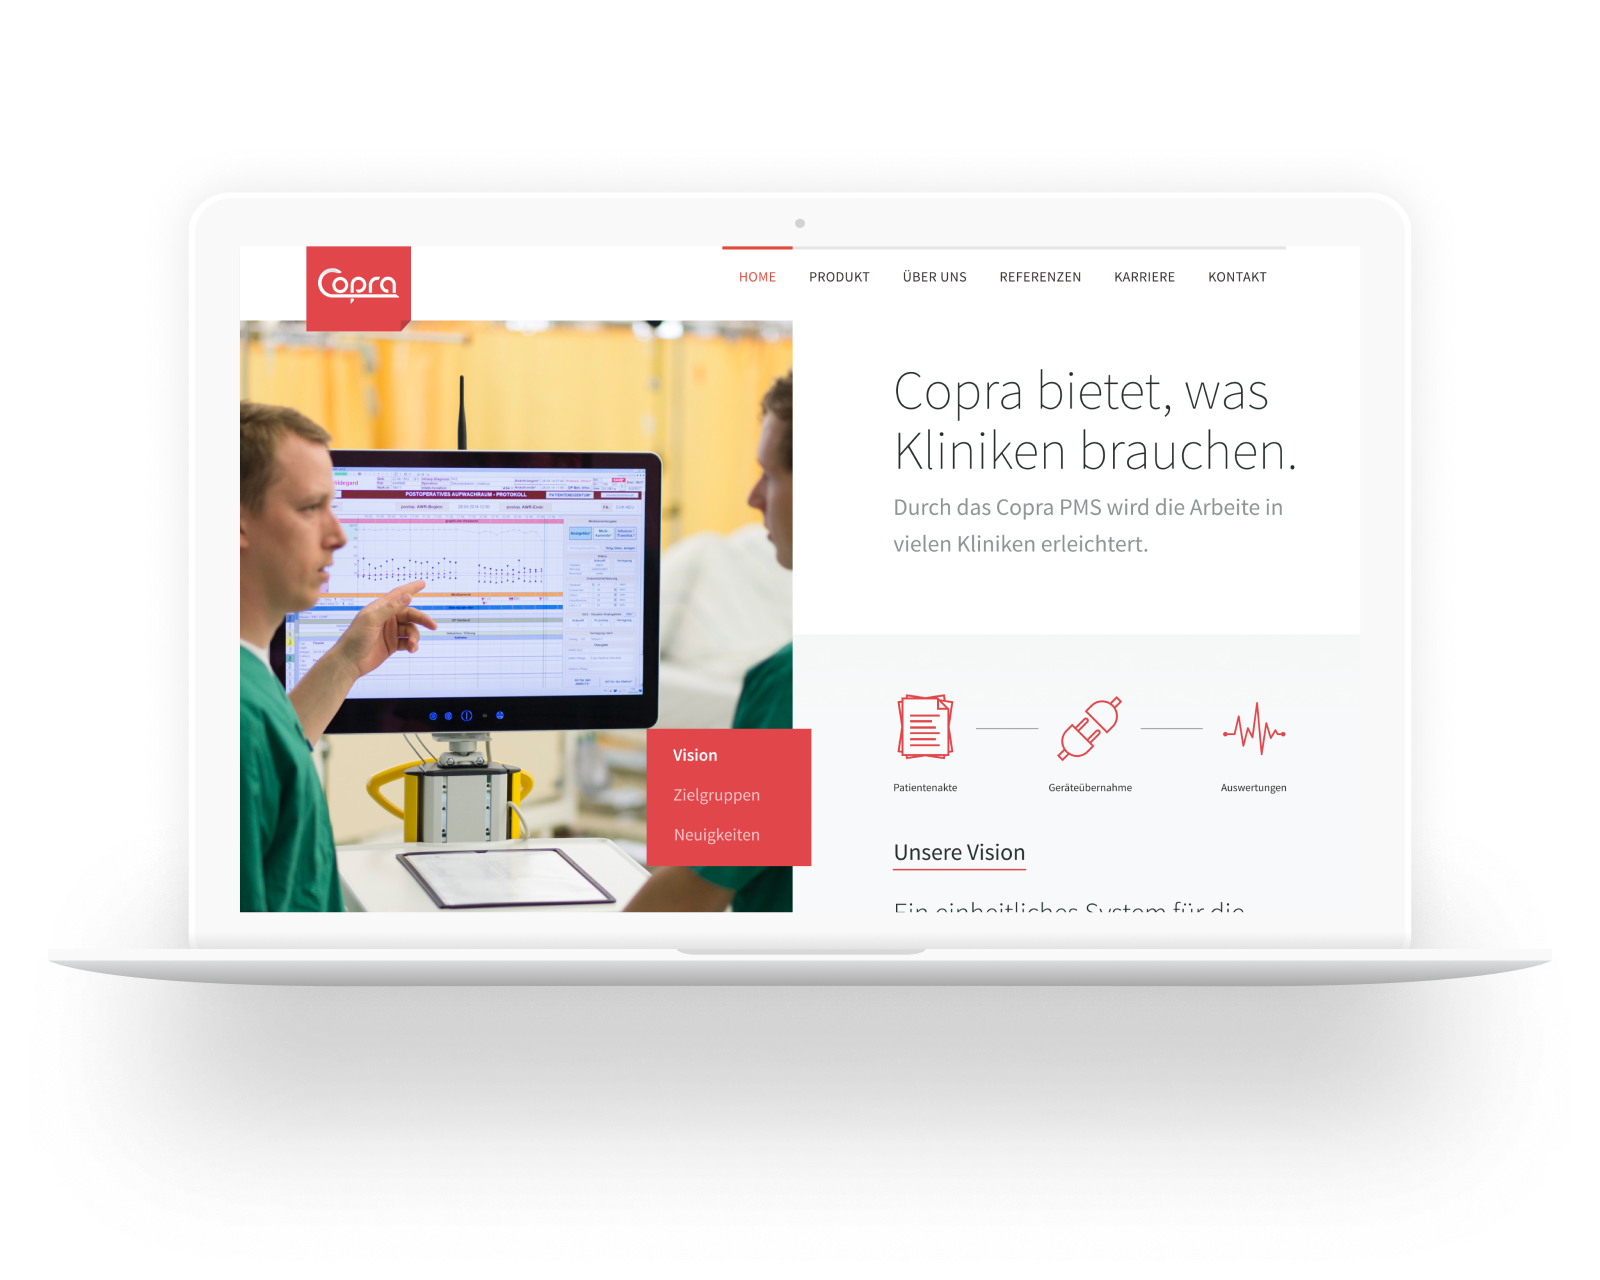 Copra GmbH corporate identity design